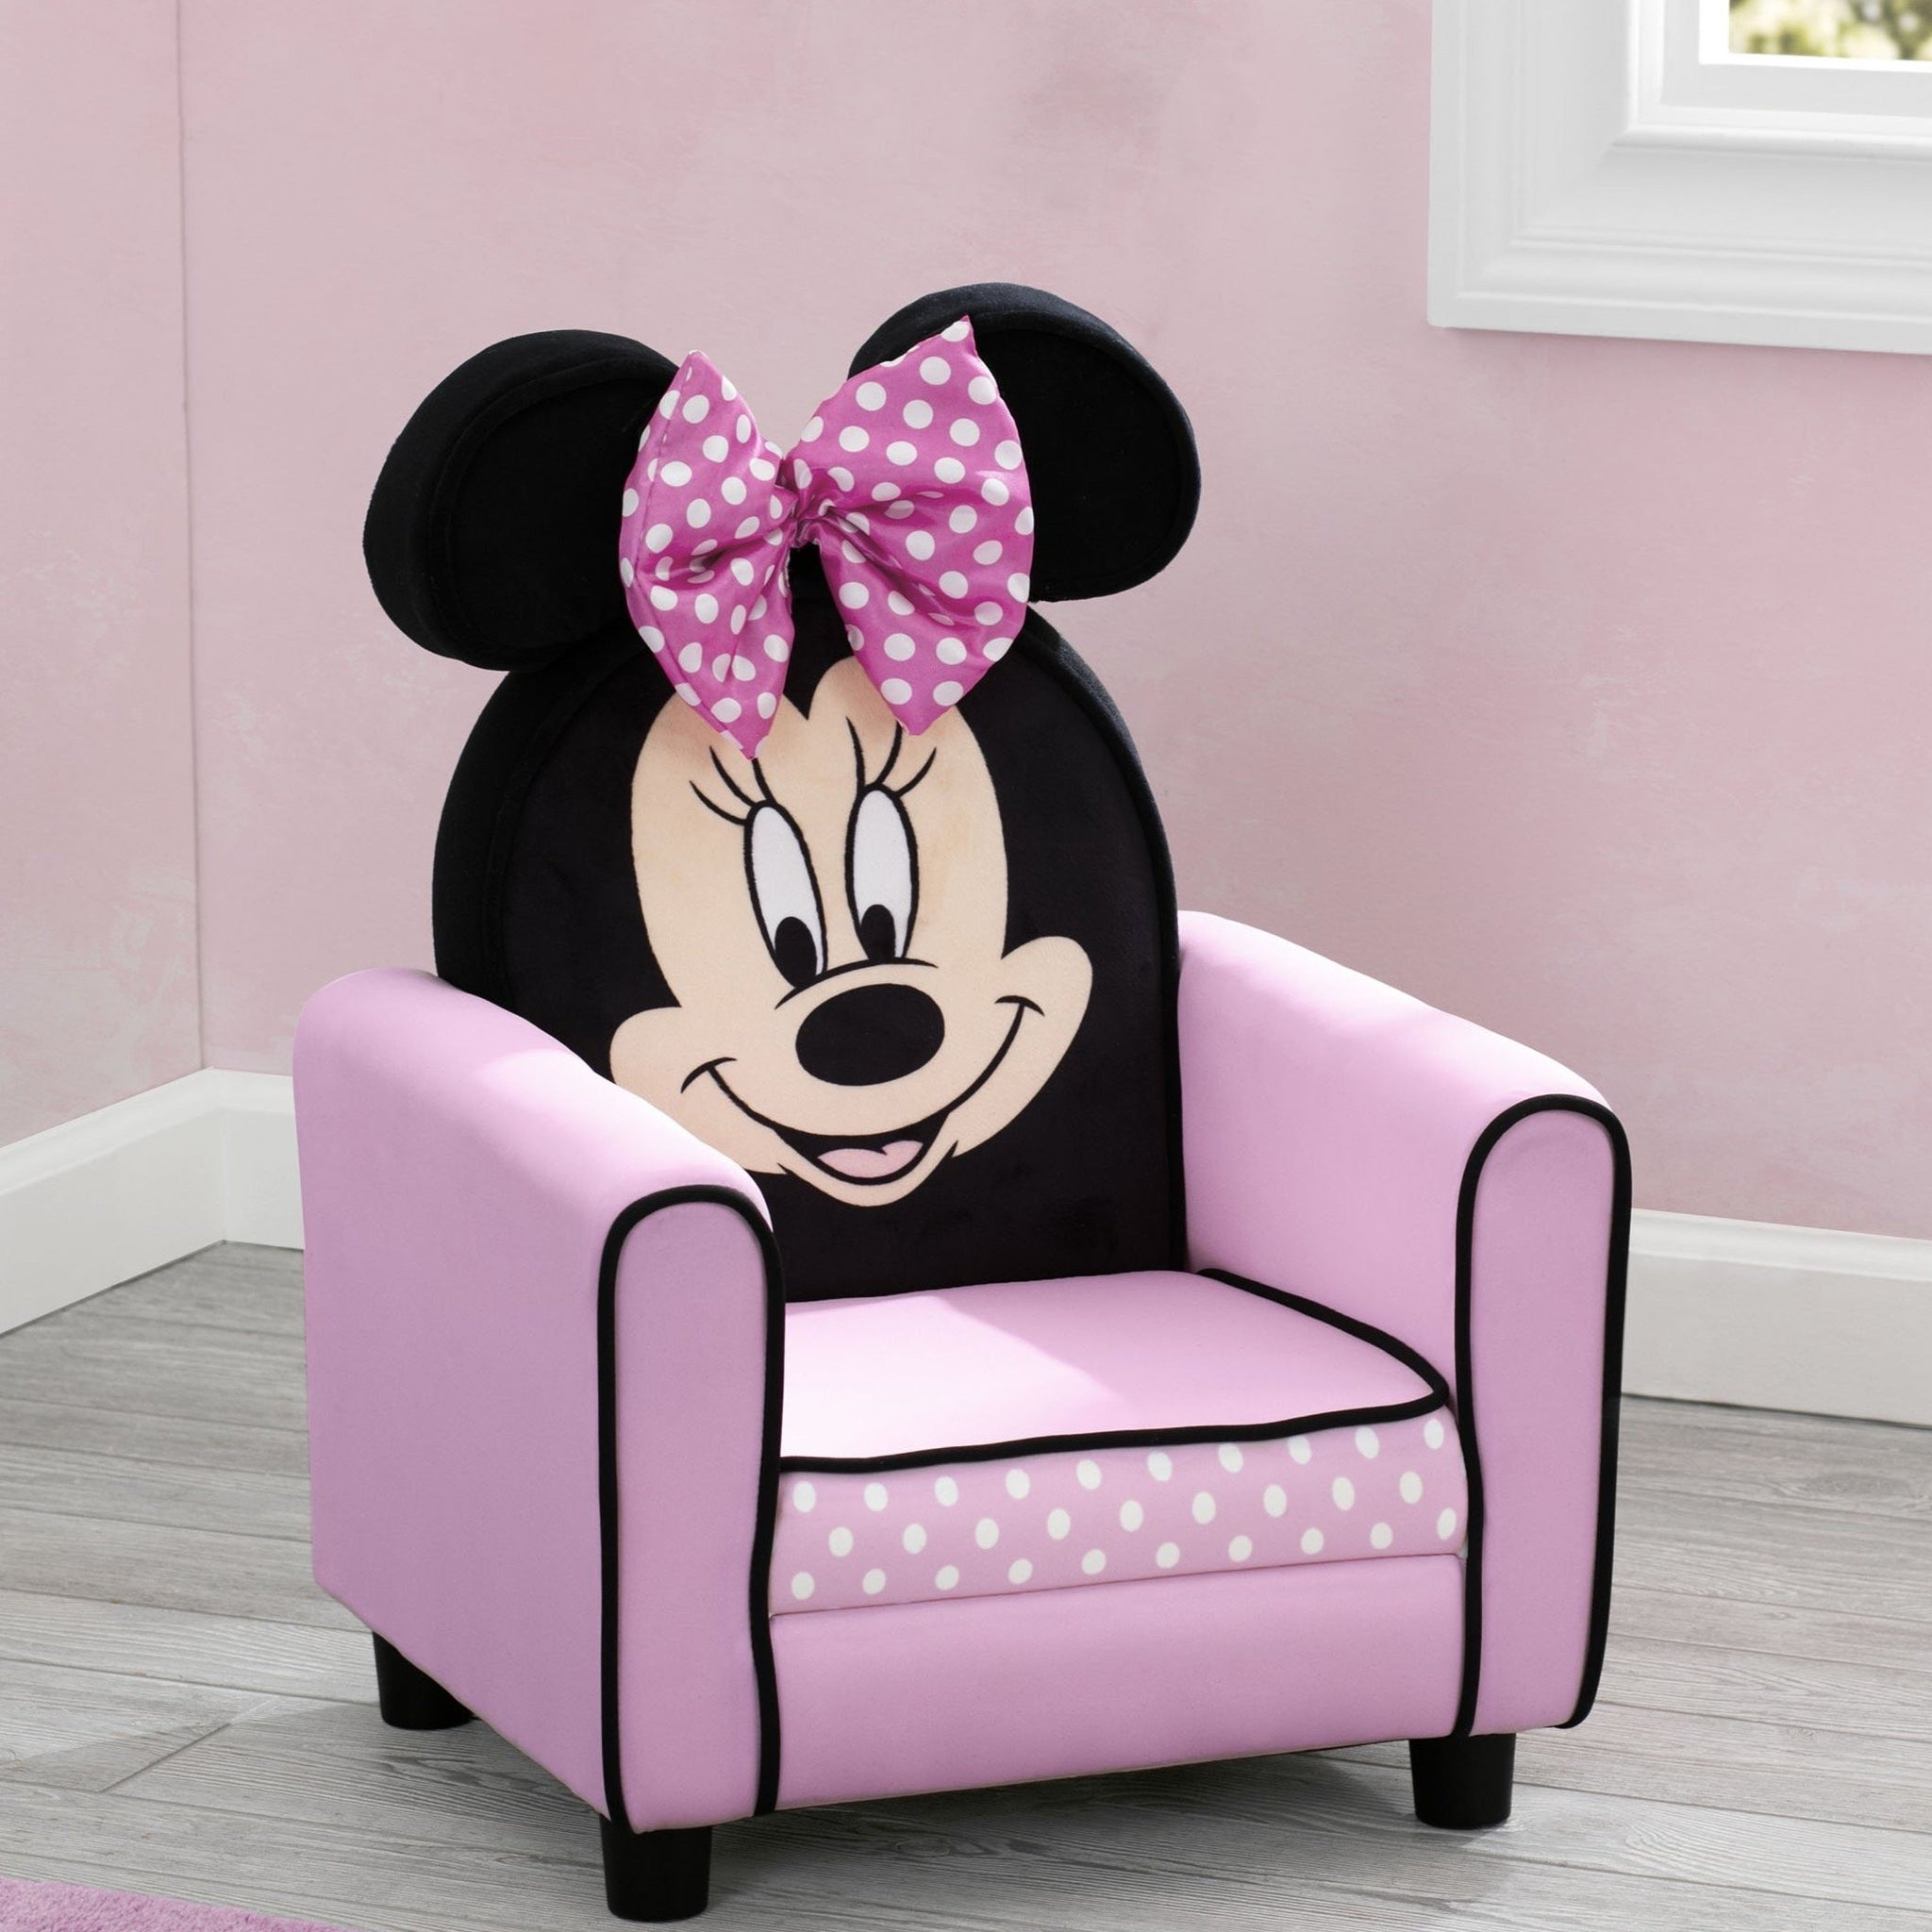 Minnie Mouse Figural Upholstered Kids Chair